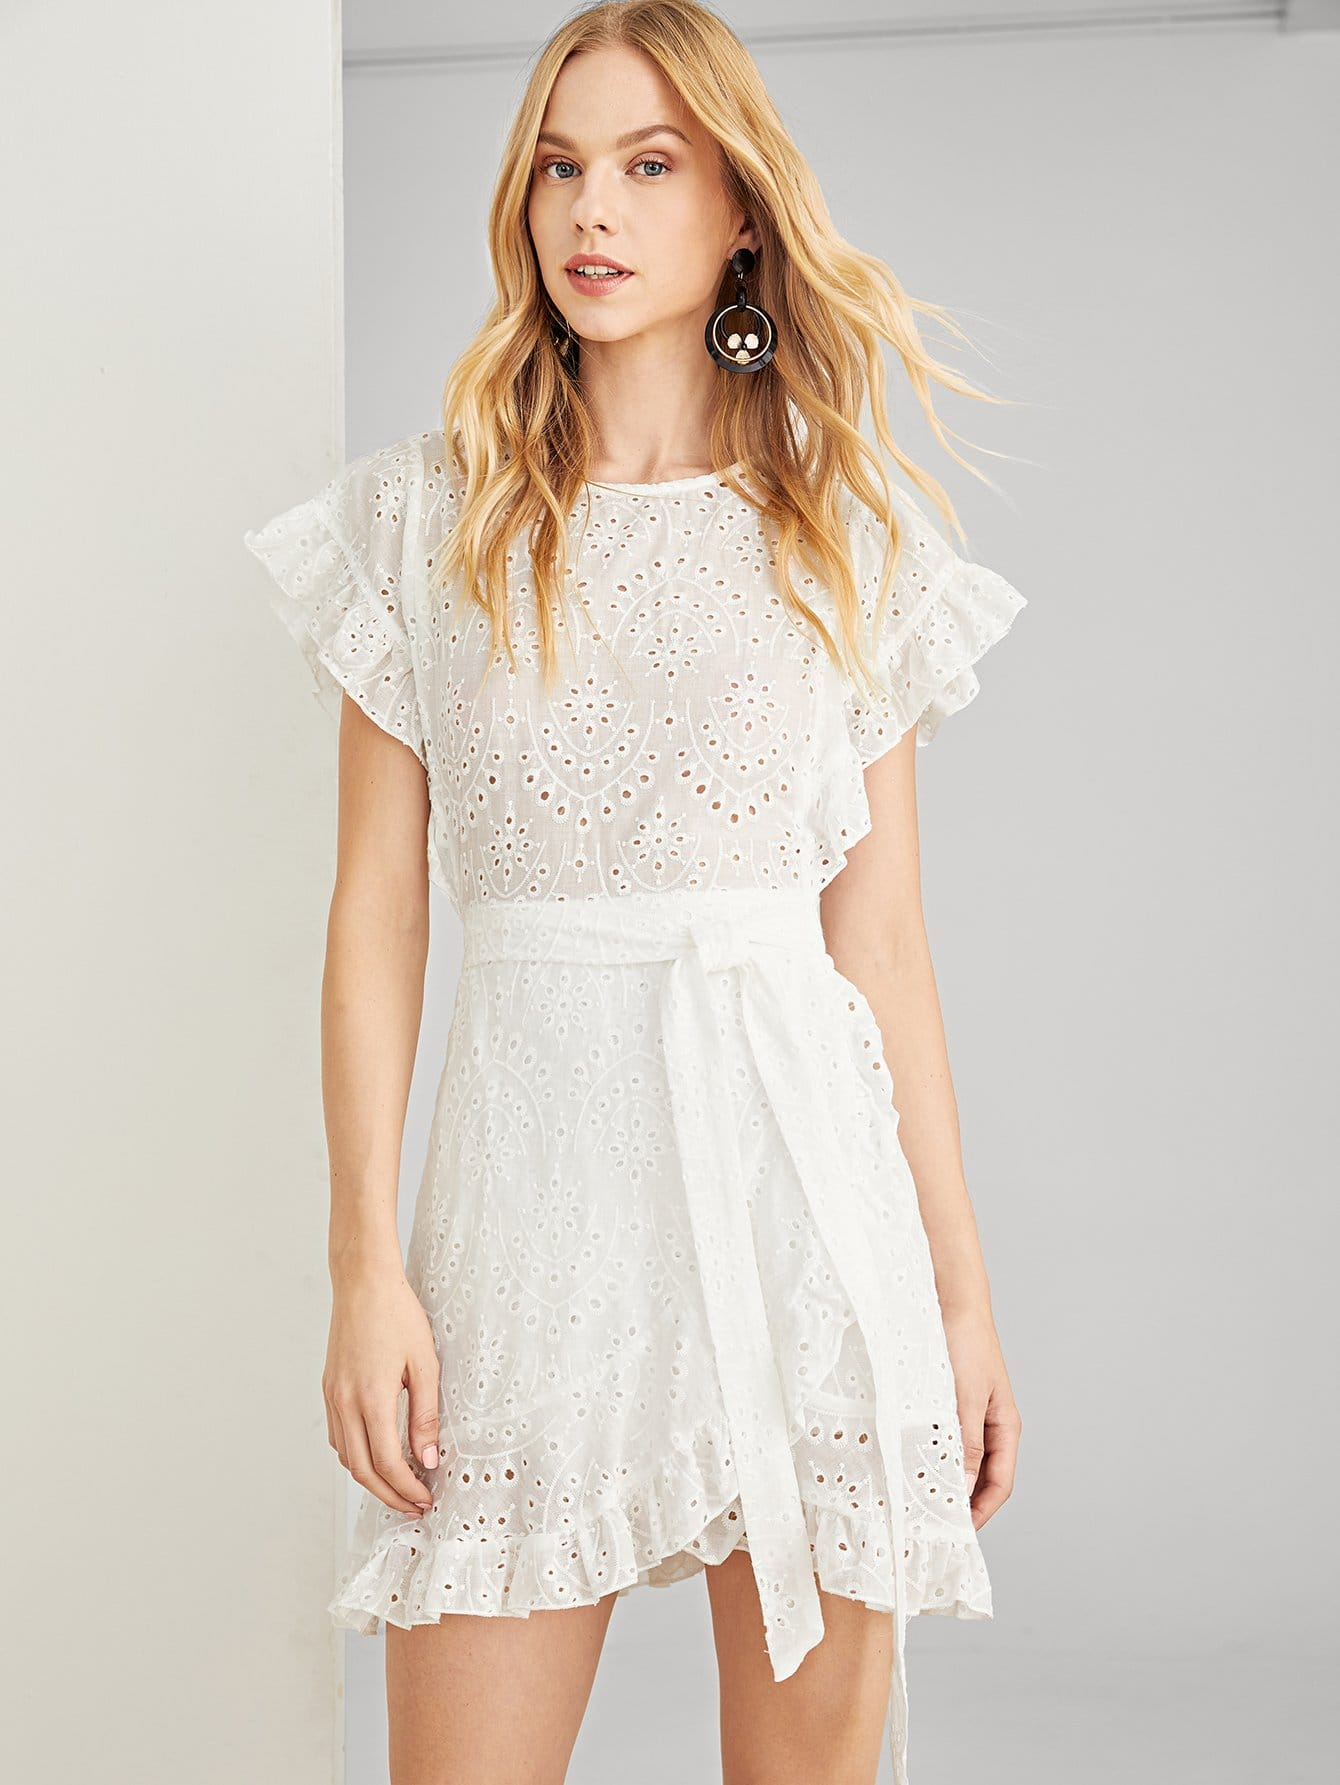 Ruffle Trim Eyelet Embroidered Belted Dress self belted solid ruffle trim dress